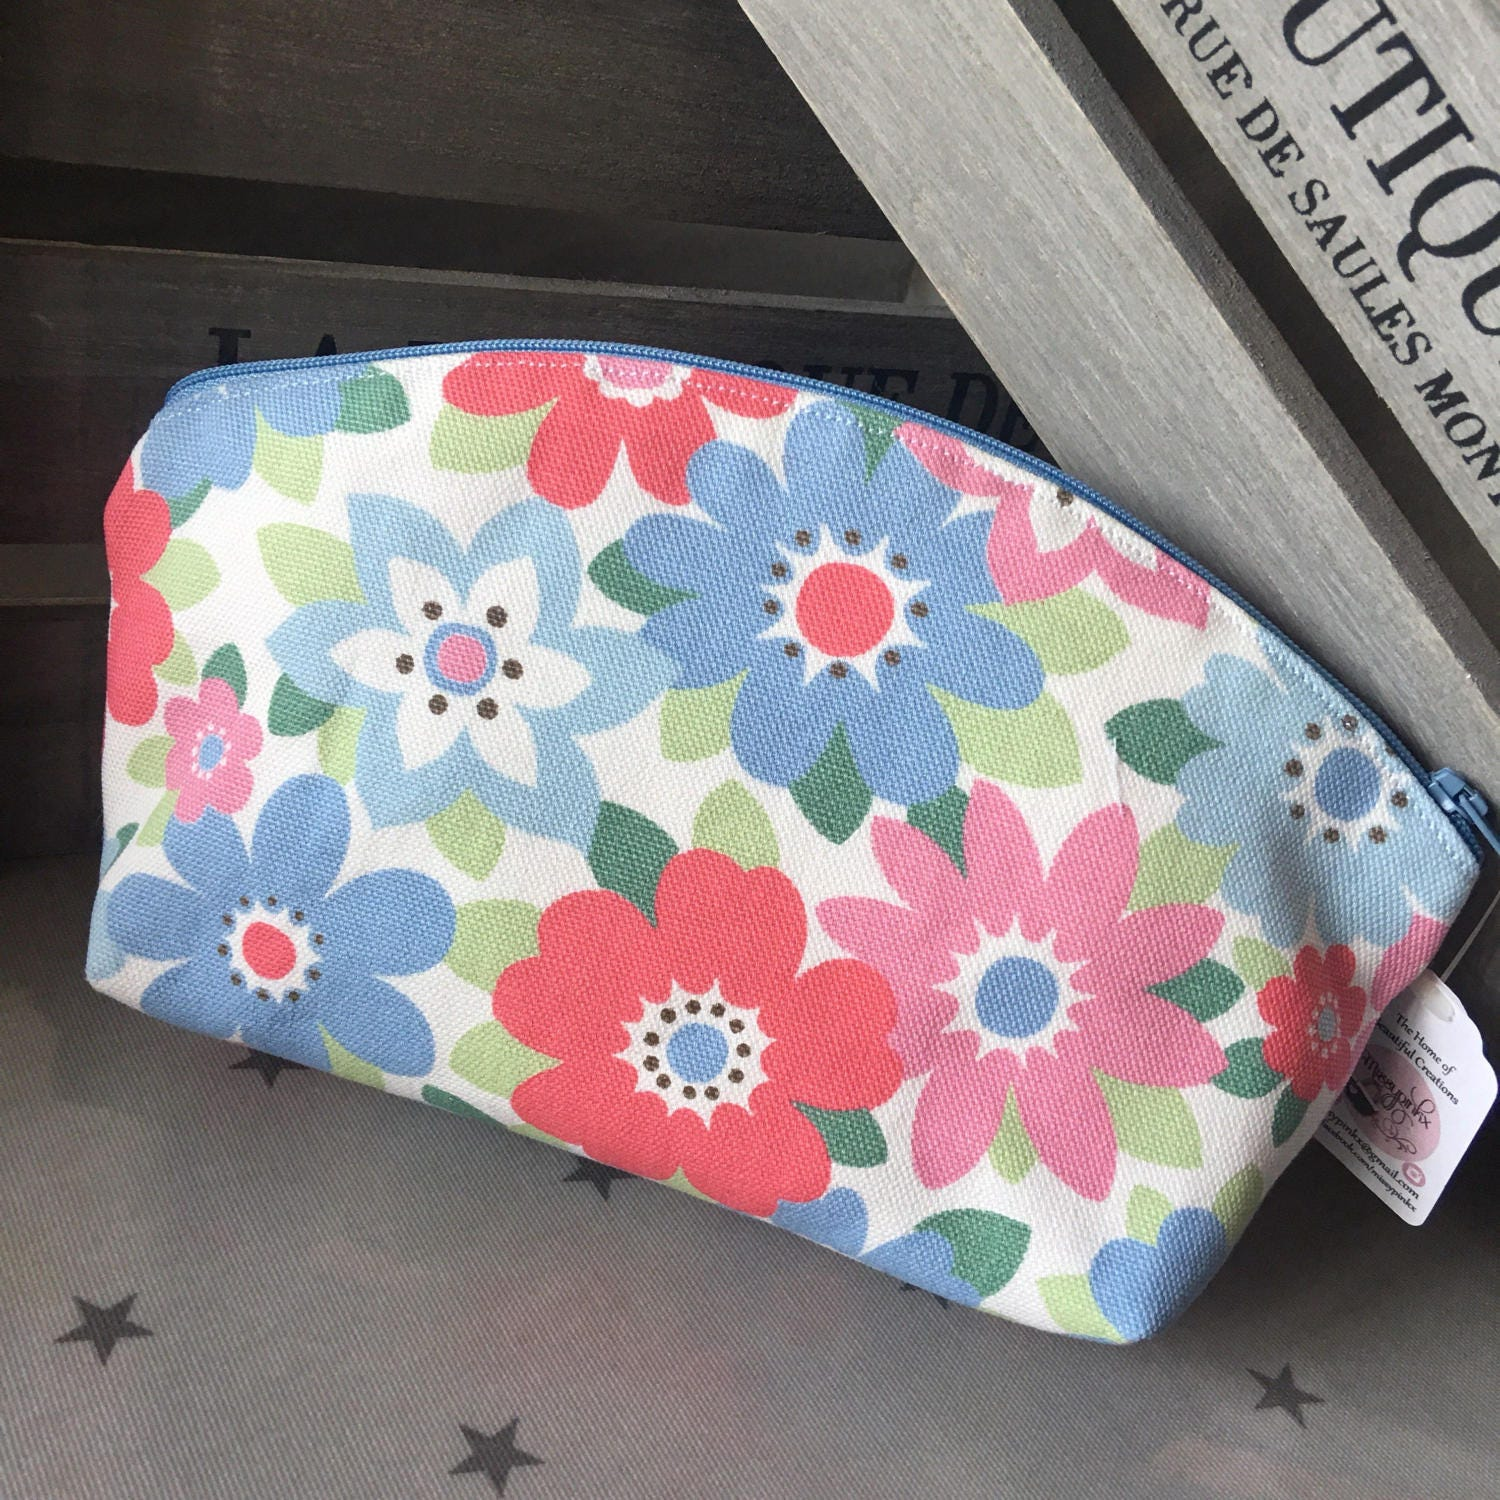 Make up bag made in Cath Kidston Blue Floral fabric